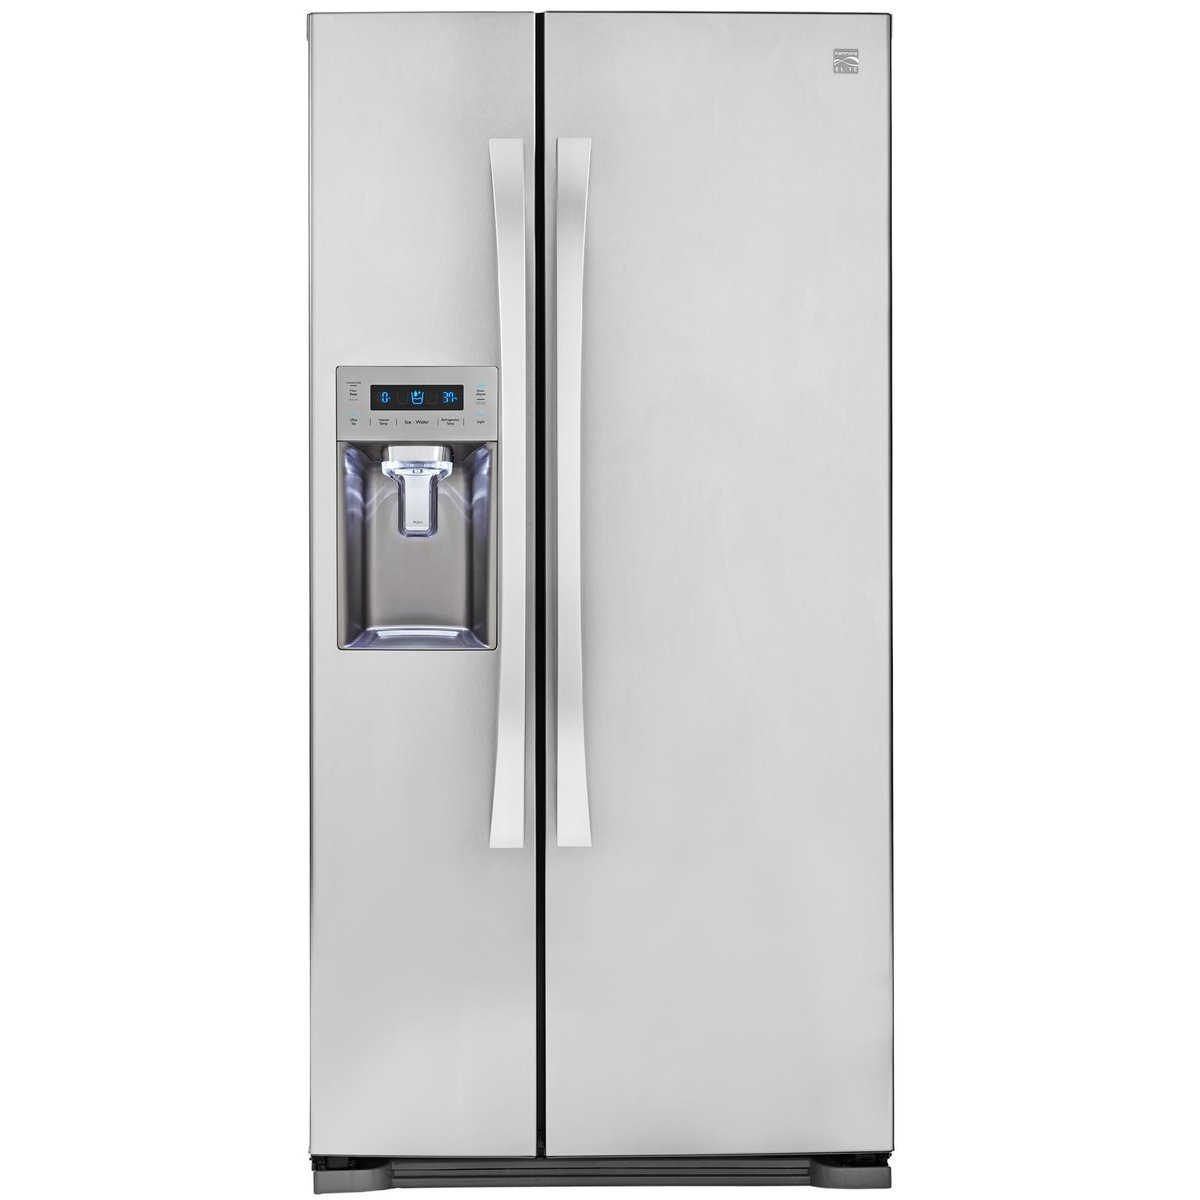 Kenmore Elite 51823 21.9 cu. ft. Side-by-Side Refrigerator in Stainless Steel, includes delivery and hookup (Available in select cities only) by Kenmore (Image #1)